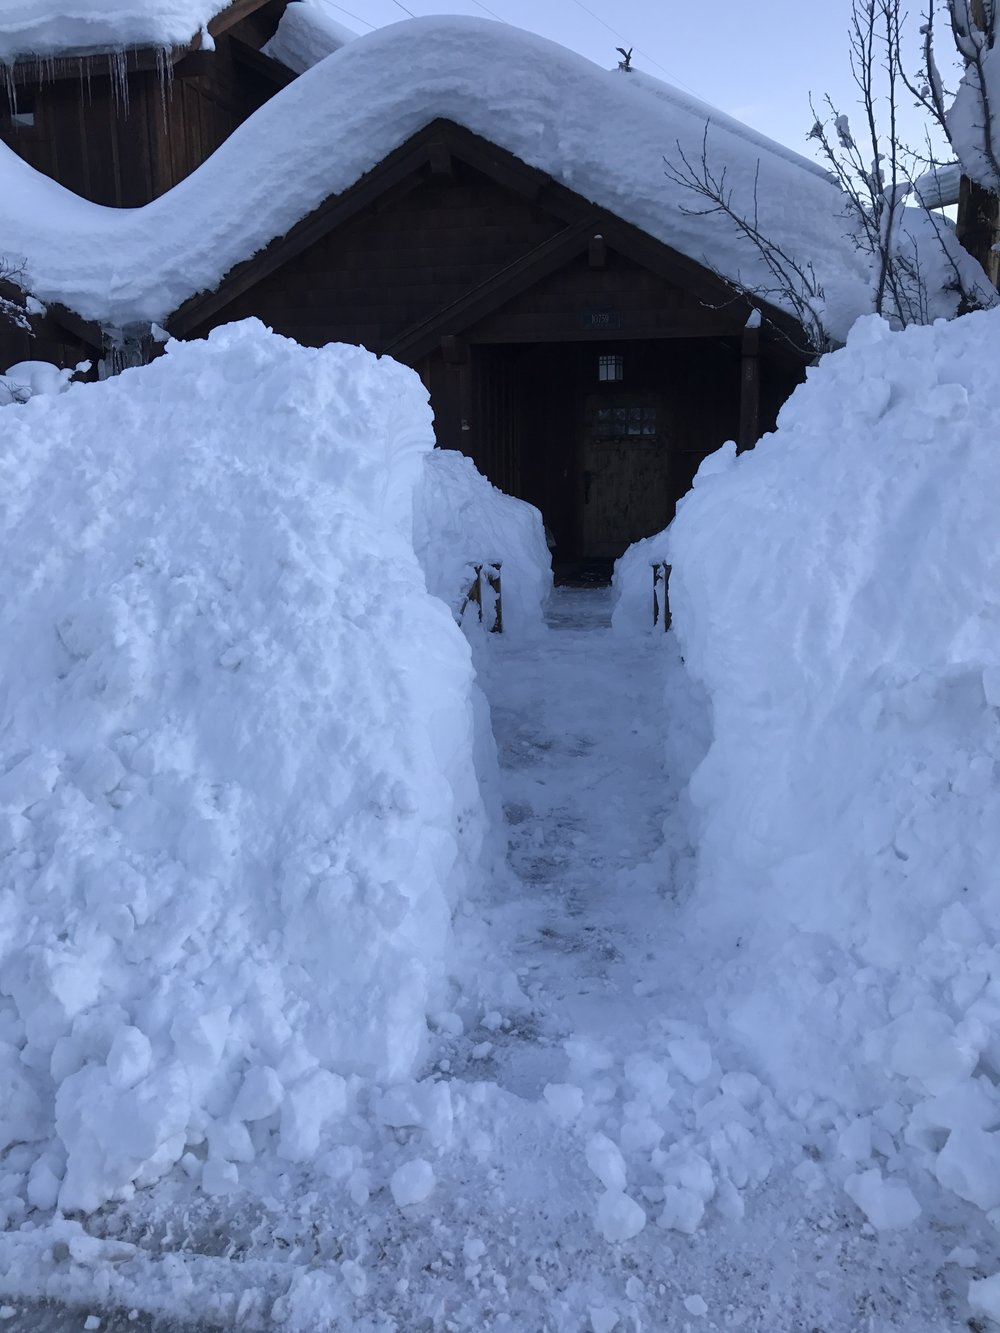 Digging out the front door